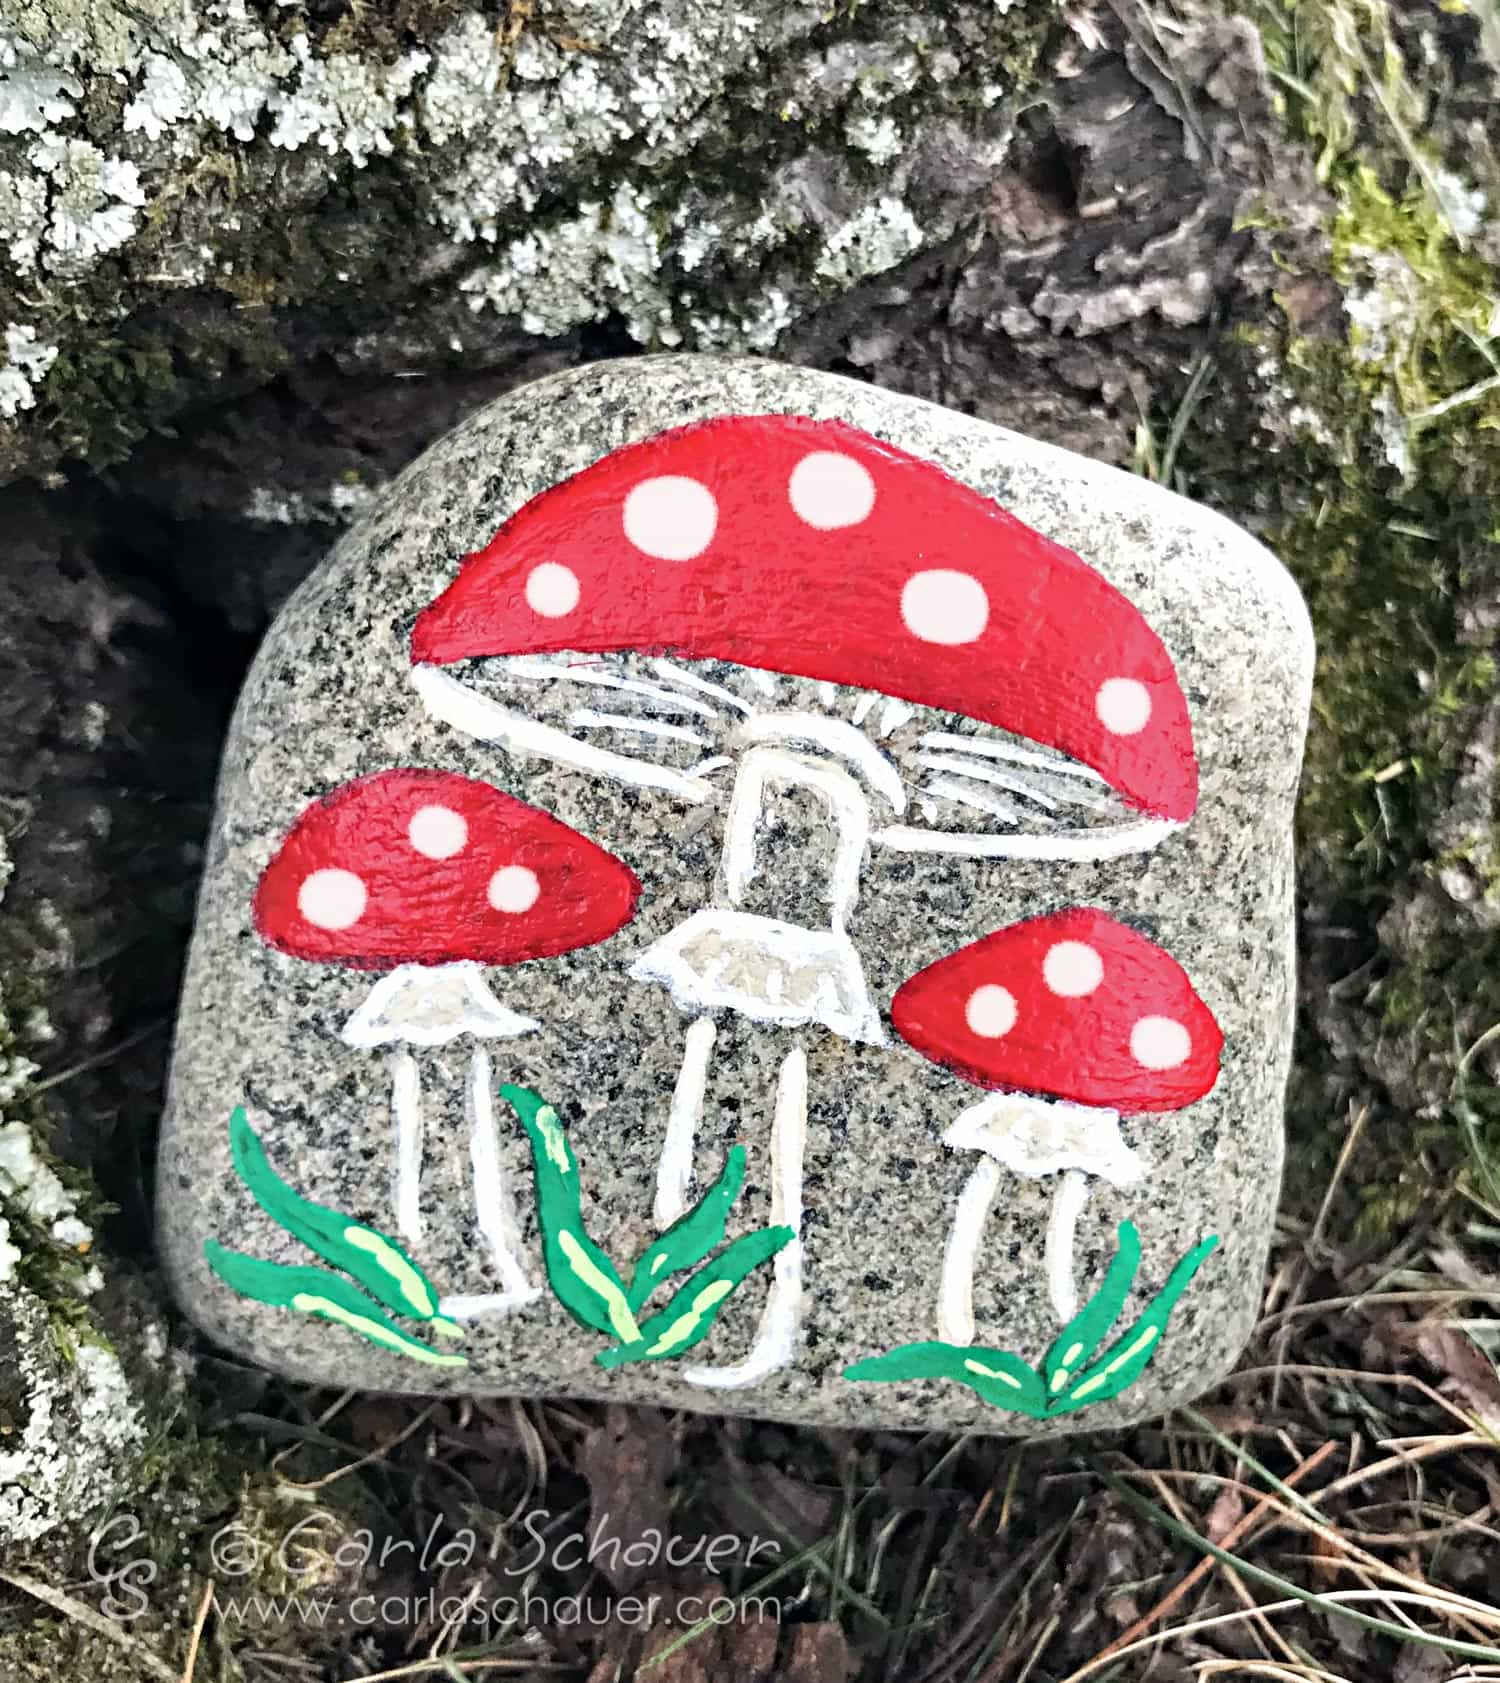 This would be adorable to make at camp! Ombre heart painted rock from Carla Schauer Designs. See easy painted rock ideas from carlaschauer.com. #easypaintedrocks #paintedrockideas #paintedrocks #rockpainting #decoratedrocks #mushroomart #stenciledrocks #hiddenrocks #mushrooms